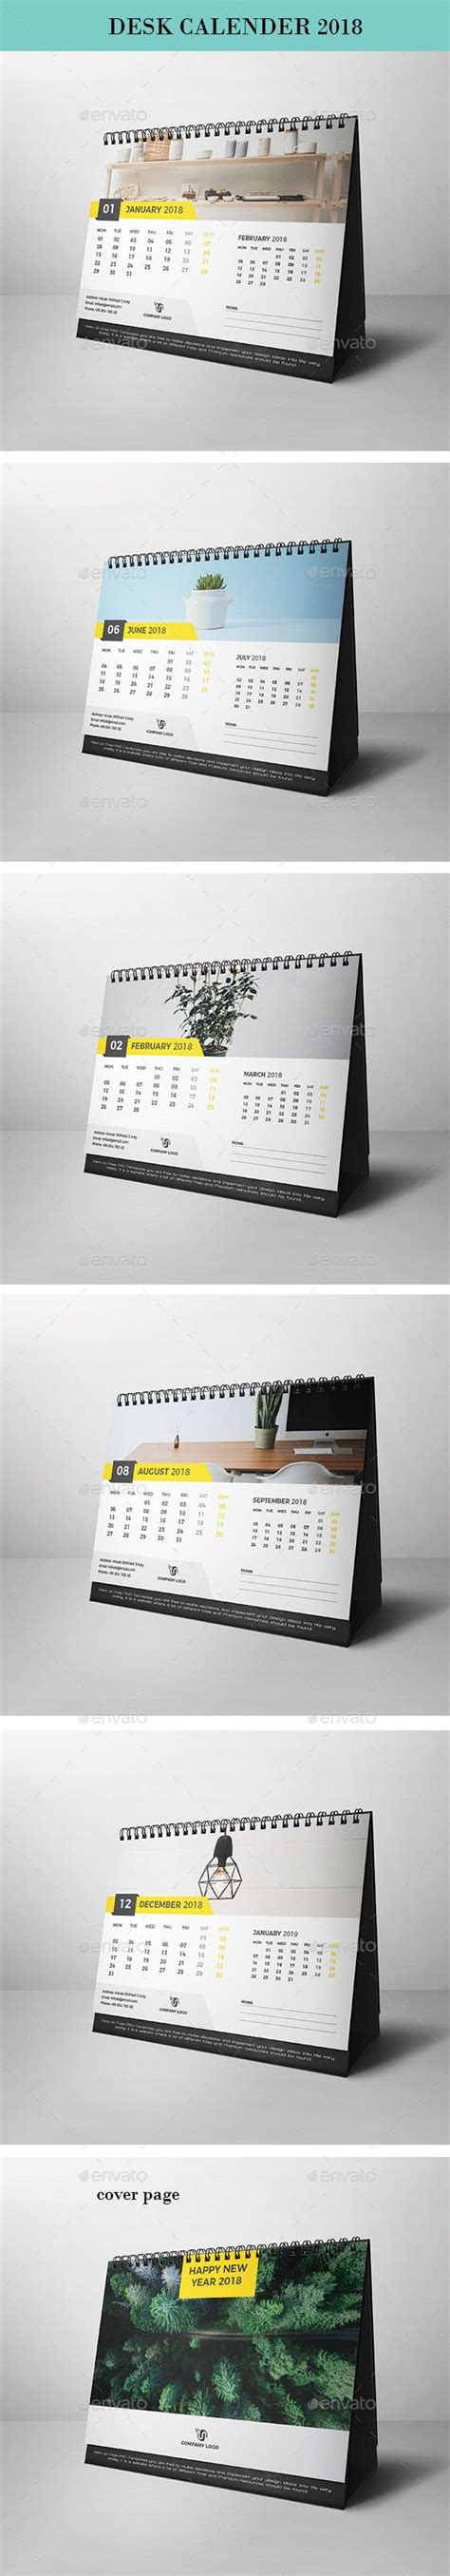 how to make desk calendar in illustrator best 25 desk calendars ideas on easy diy room